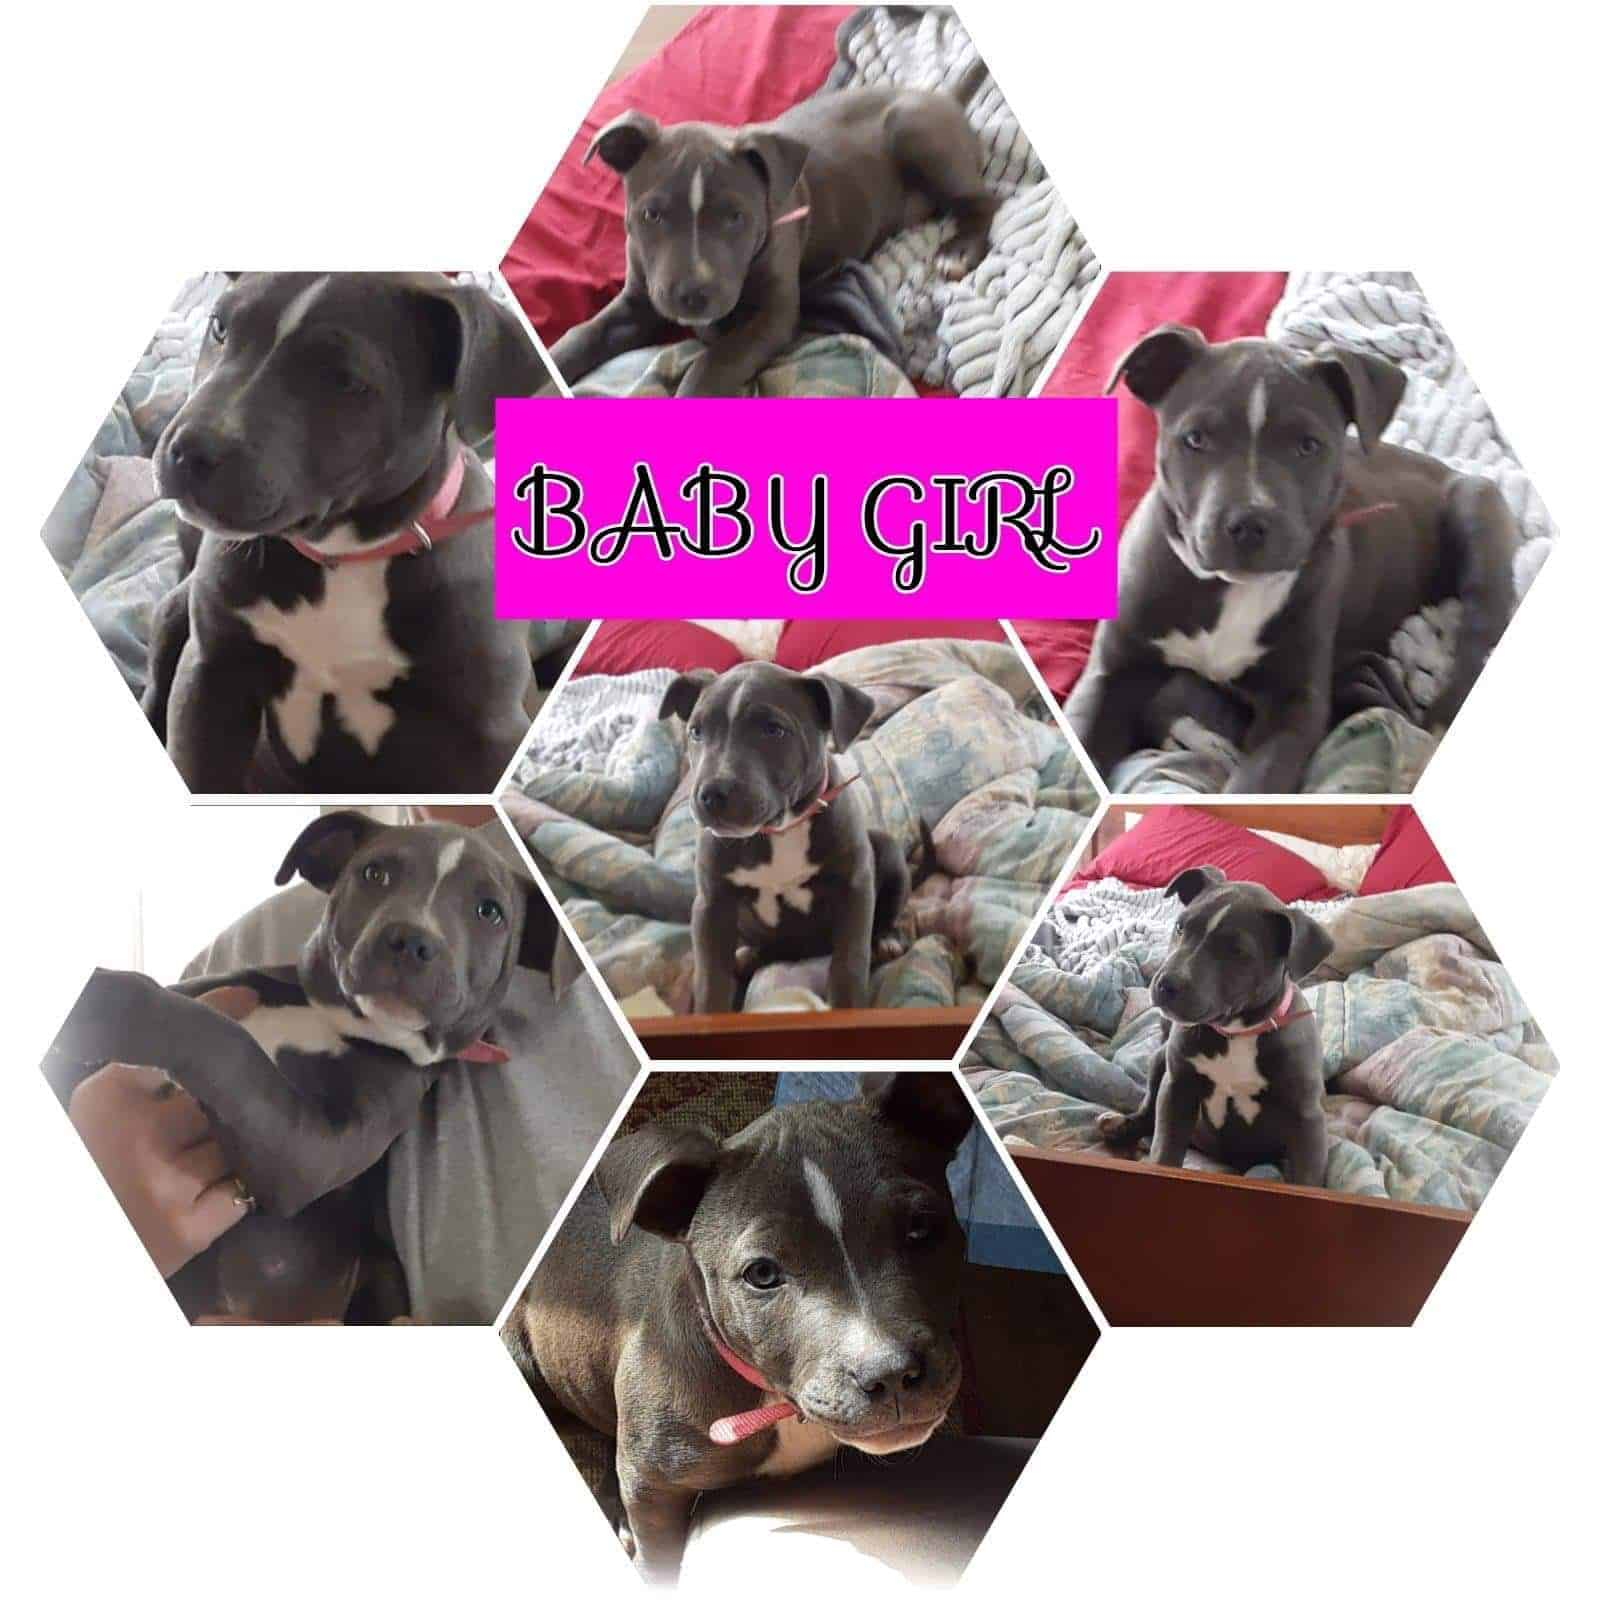 Blue nose pit bull 4 weeks old pups